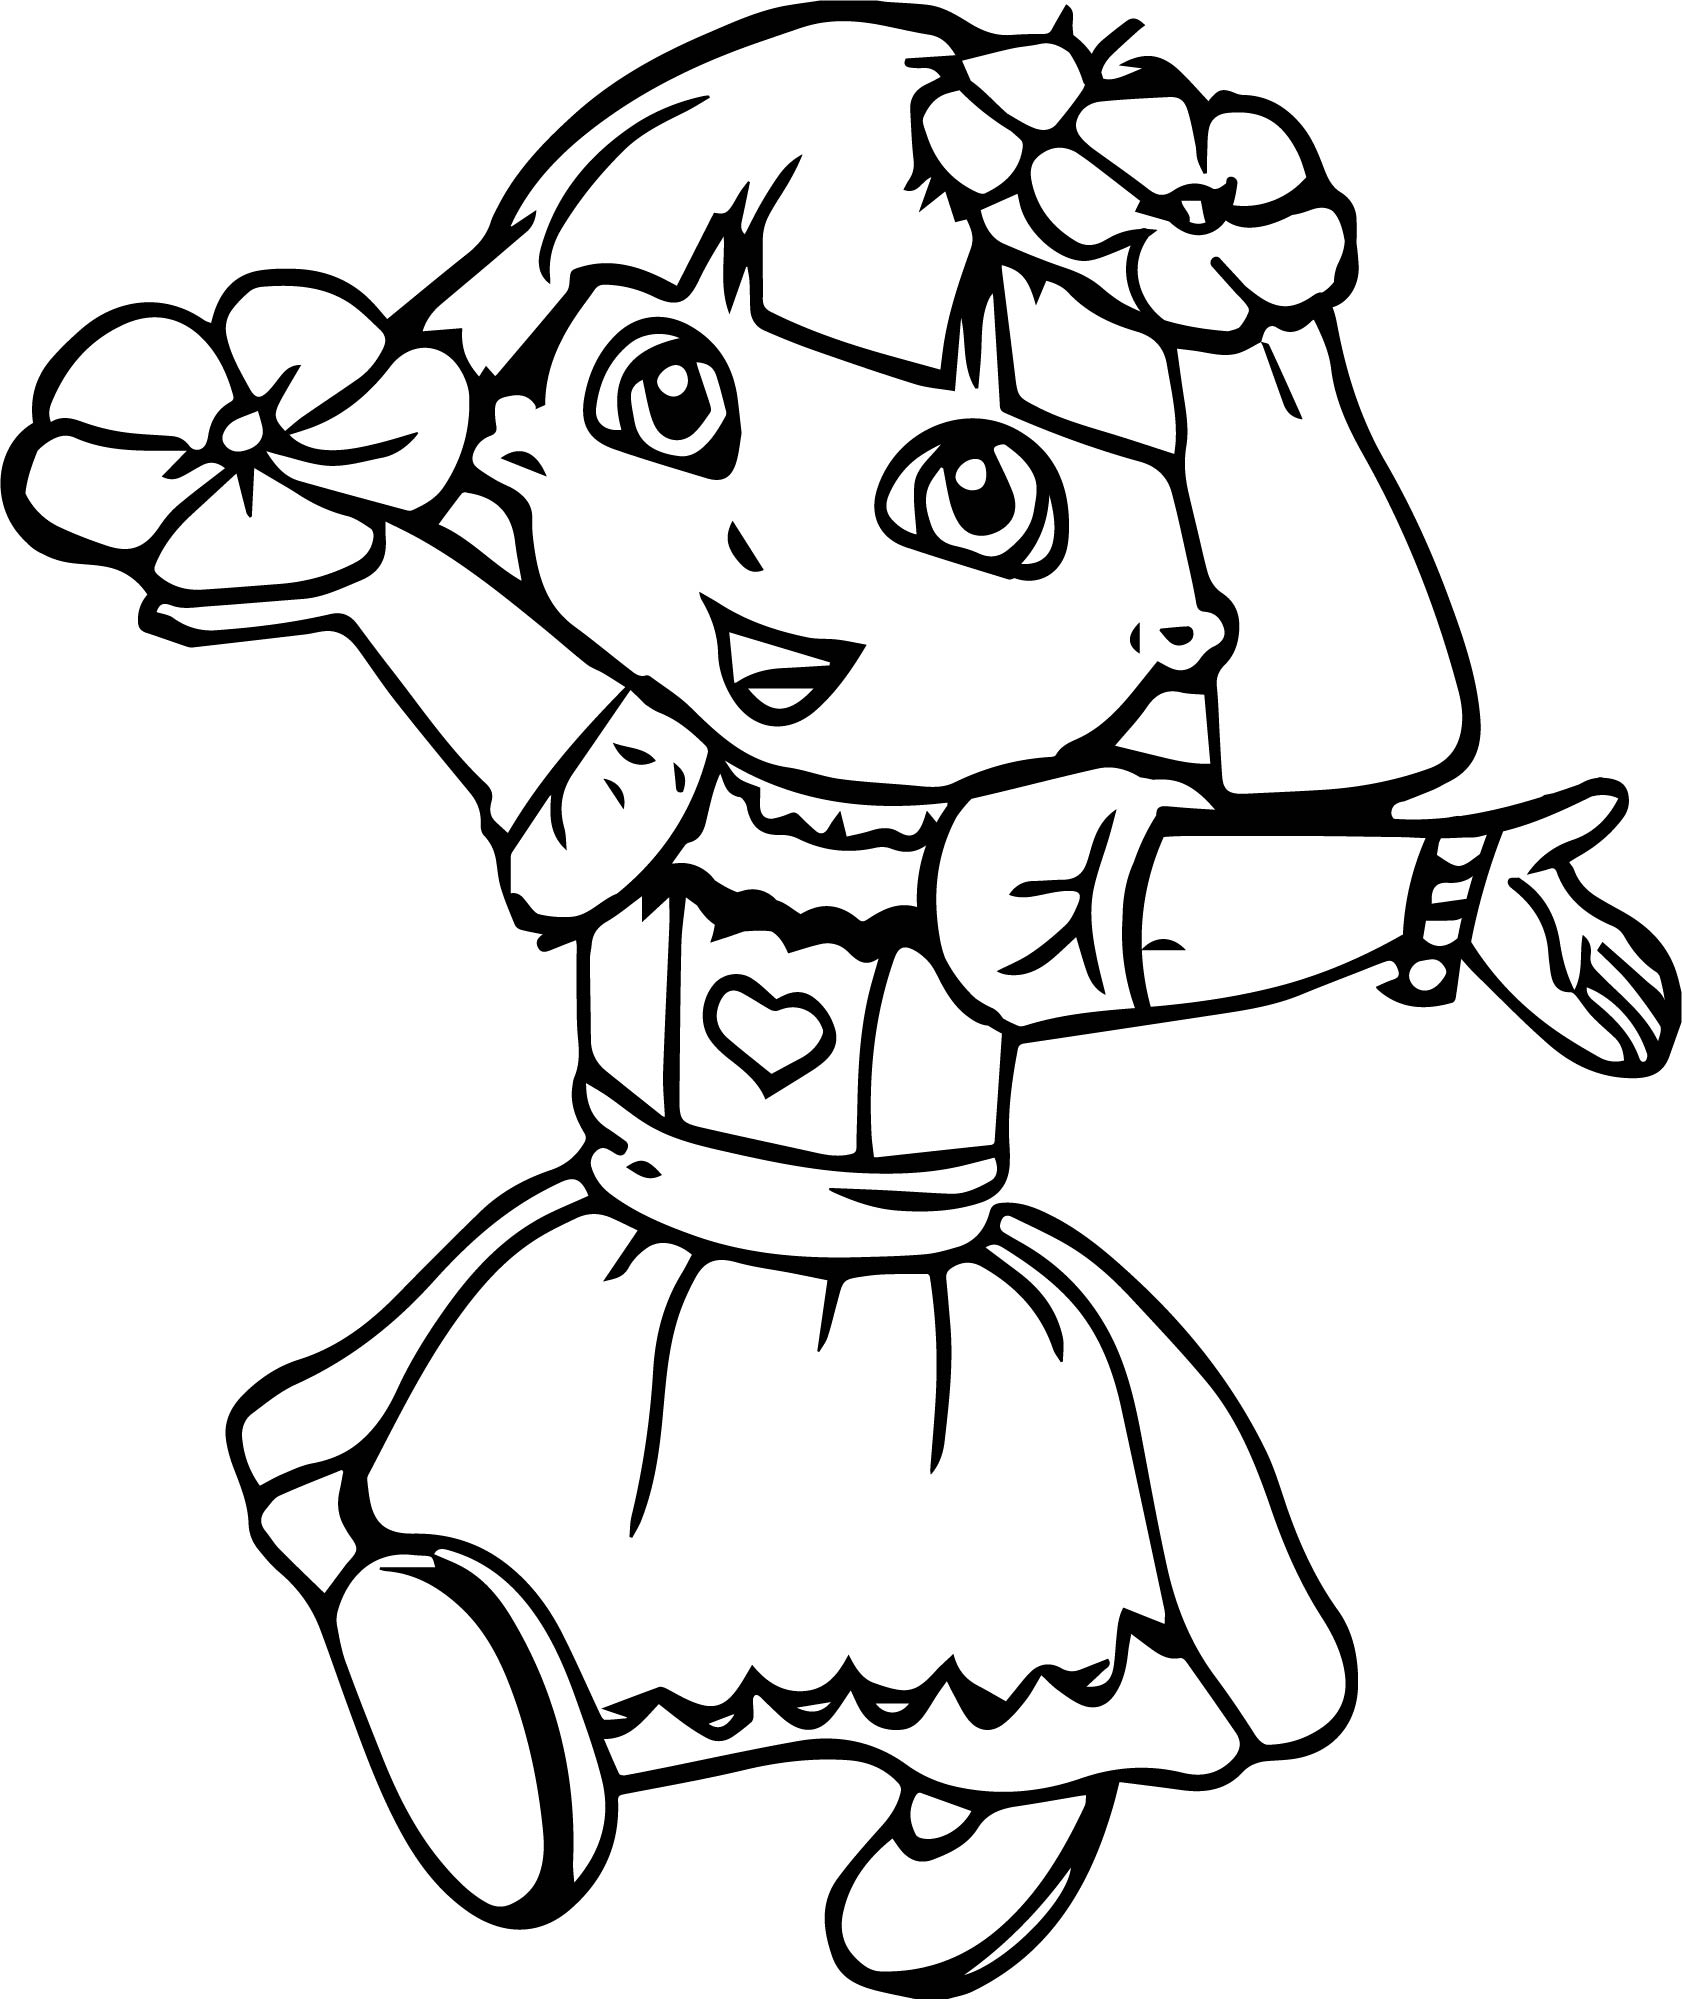 dora face coloring pages - photo#36